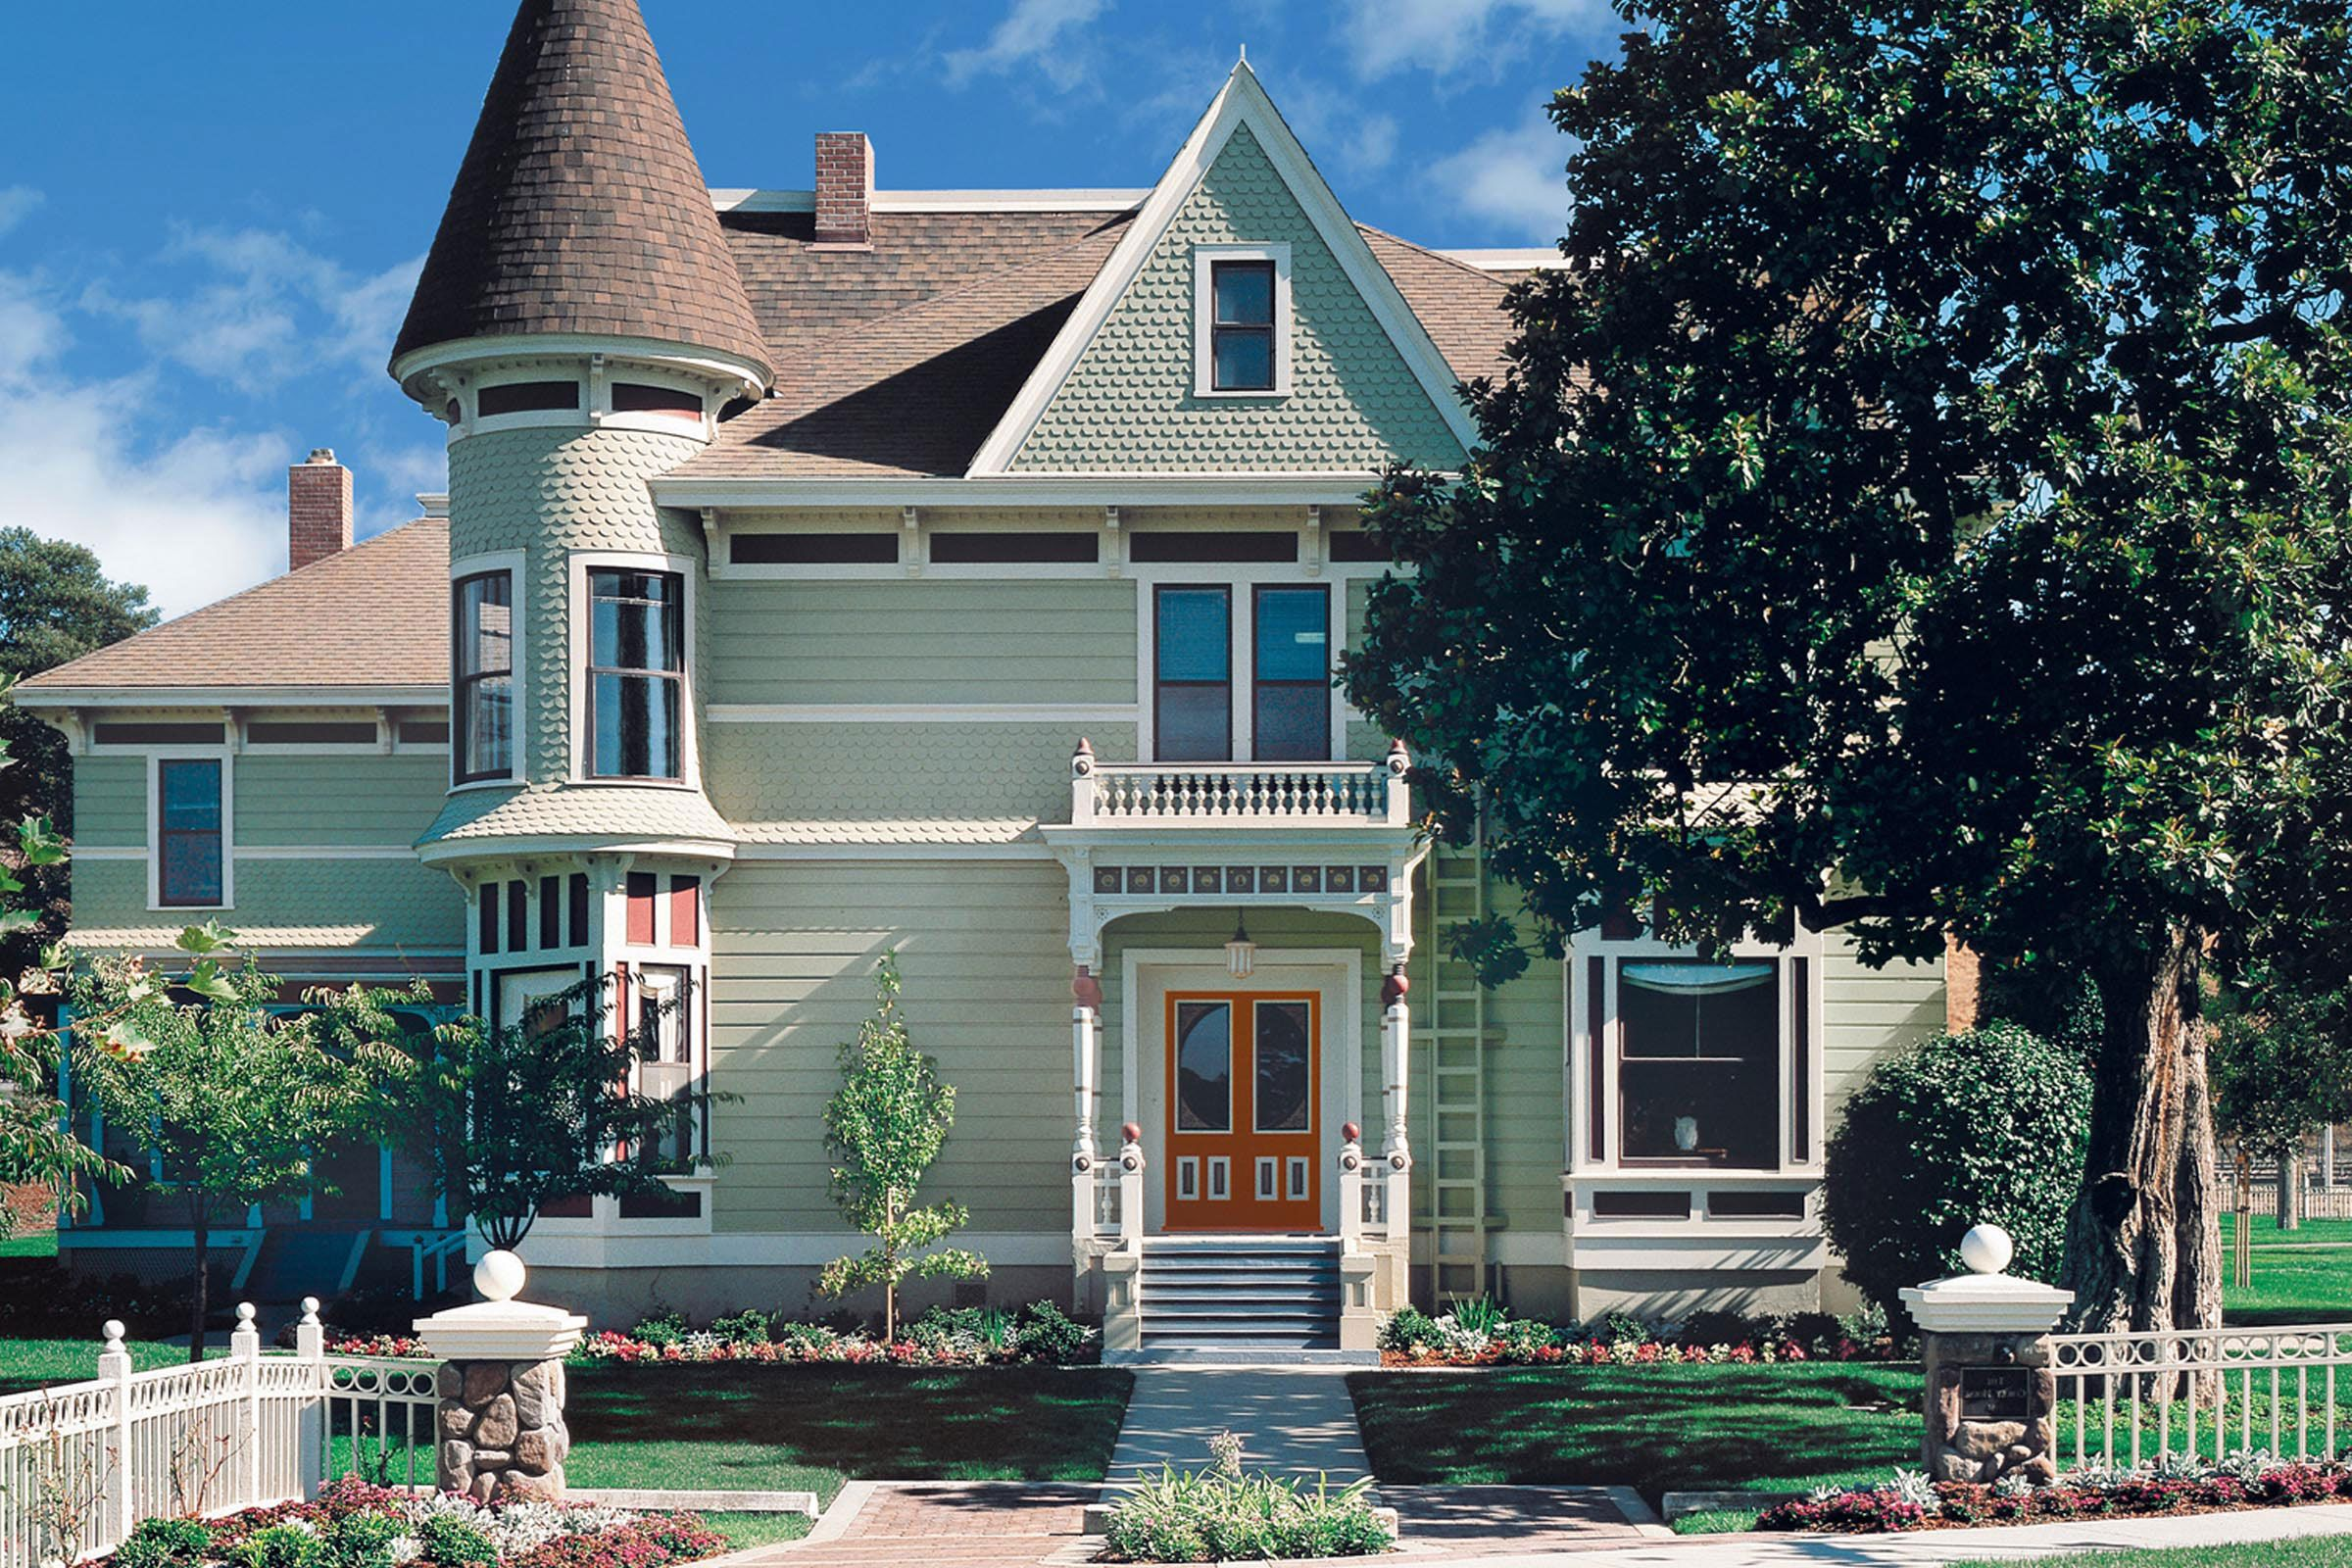 Exterior Paint Products Exterior House Colors Paint Colors For Home Interior Paint Colors Schemes